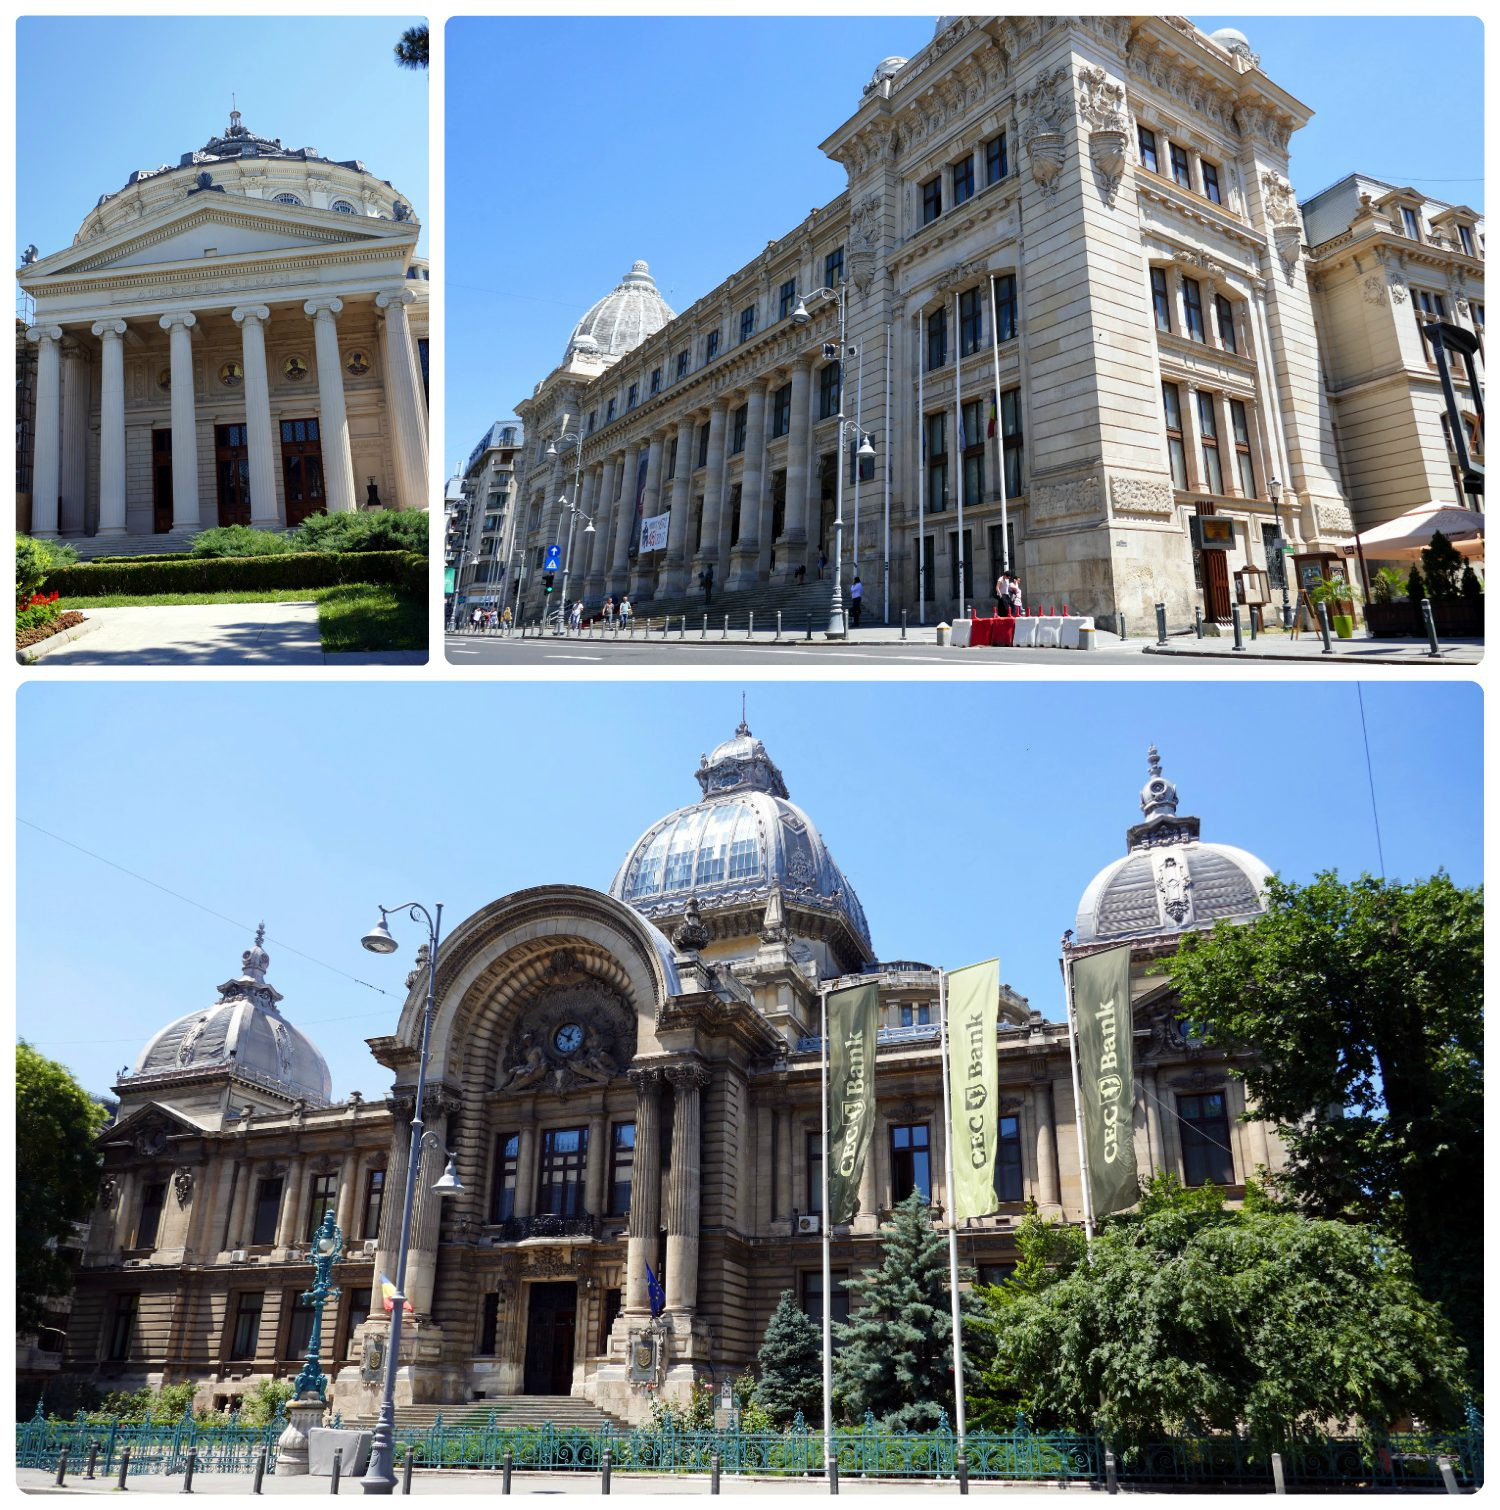 Clockwise (from the top): The exterior of the Romanian Athenaeum, The National History Museum is a huge building that takes up most of the block, the Palace of the Savings Bank is a building with such beautiful architecture that it's hard to believe it's a bank.